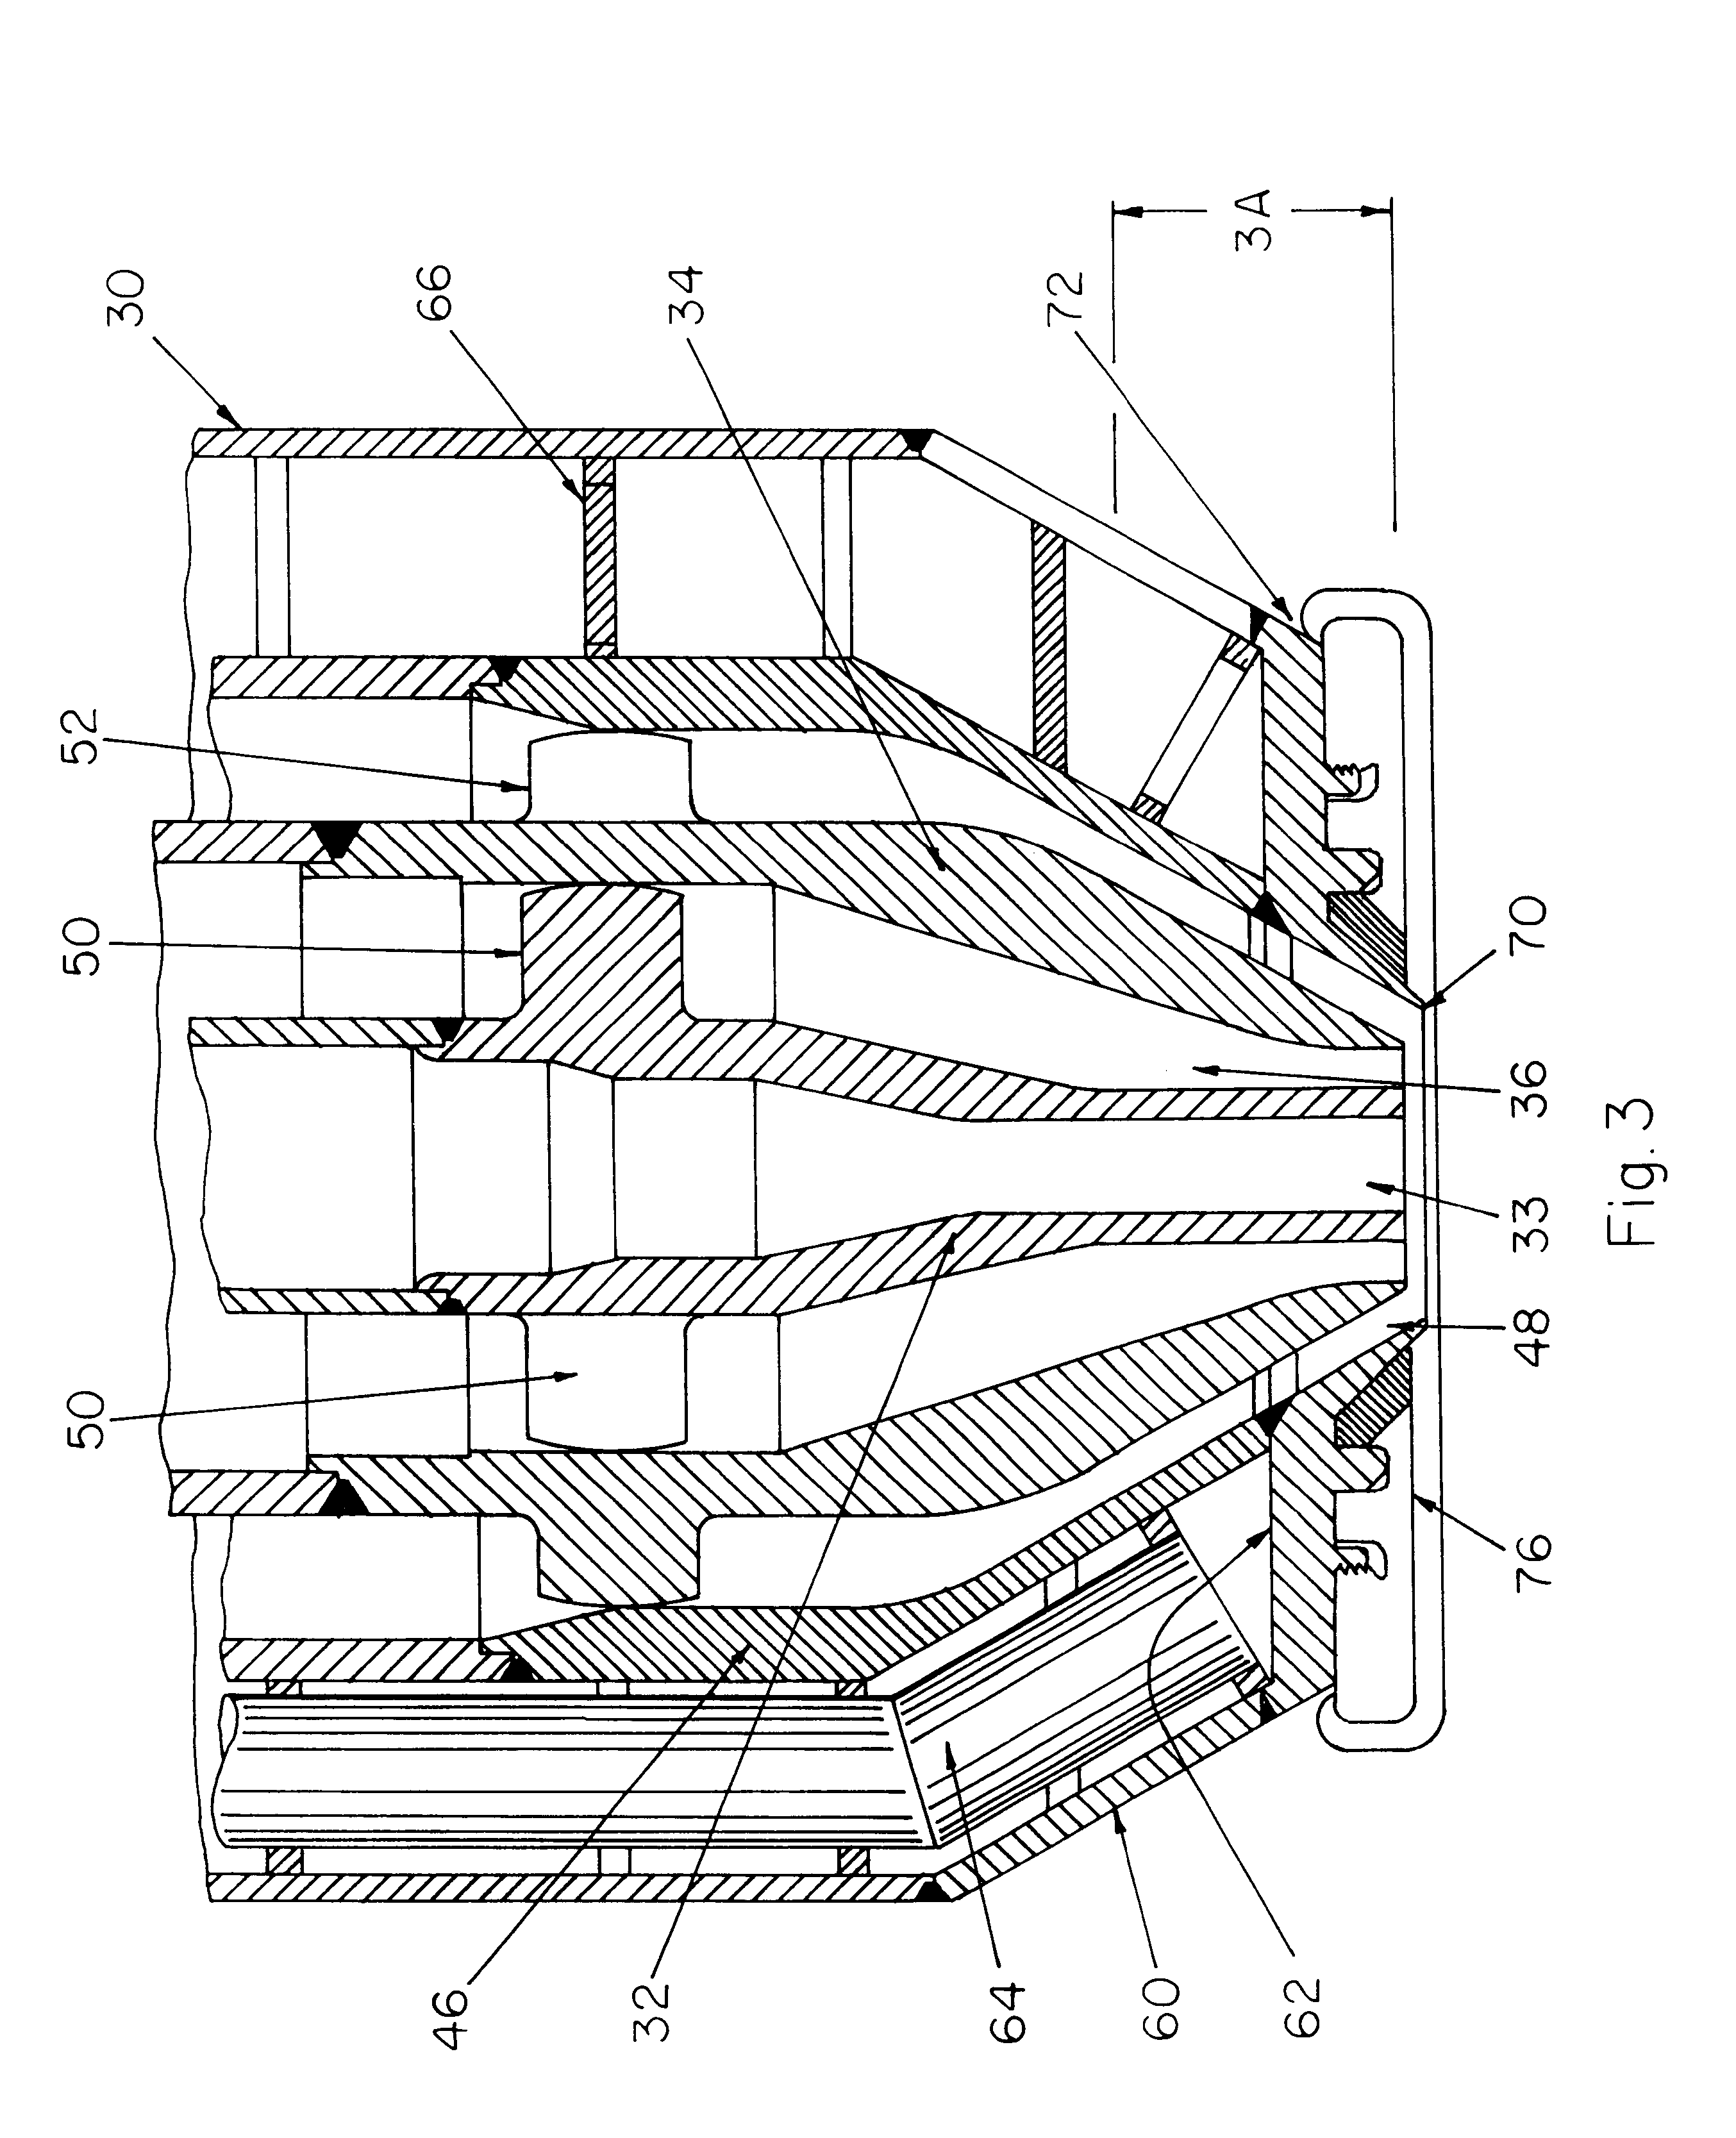 patent us6755355 coal gasification feed injector shield with integral 36 Inch Sub-Zero Refrigerator patent drawing